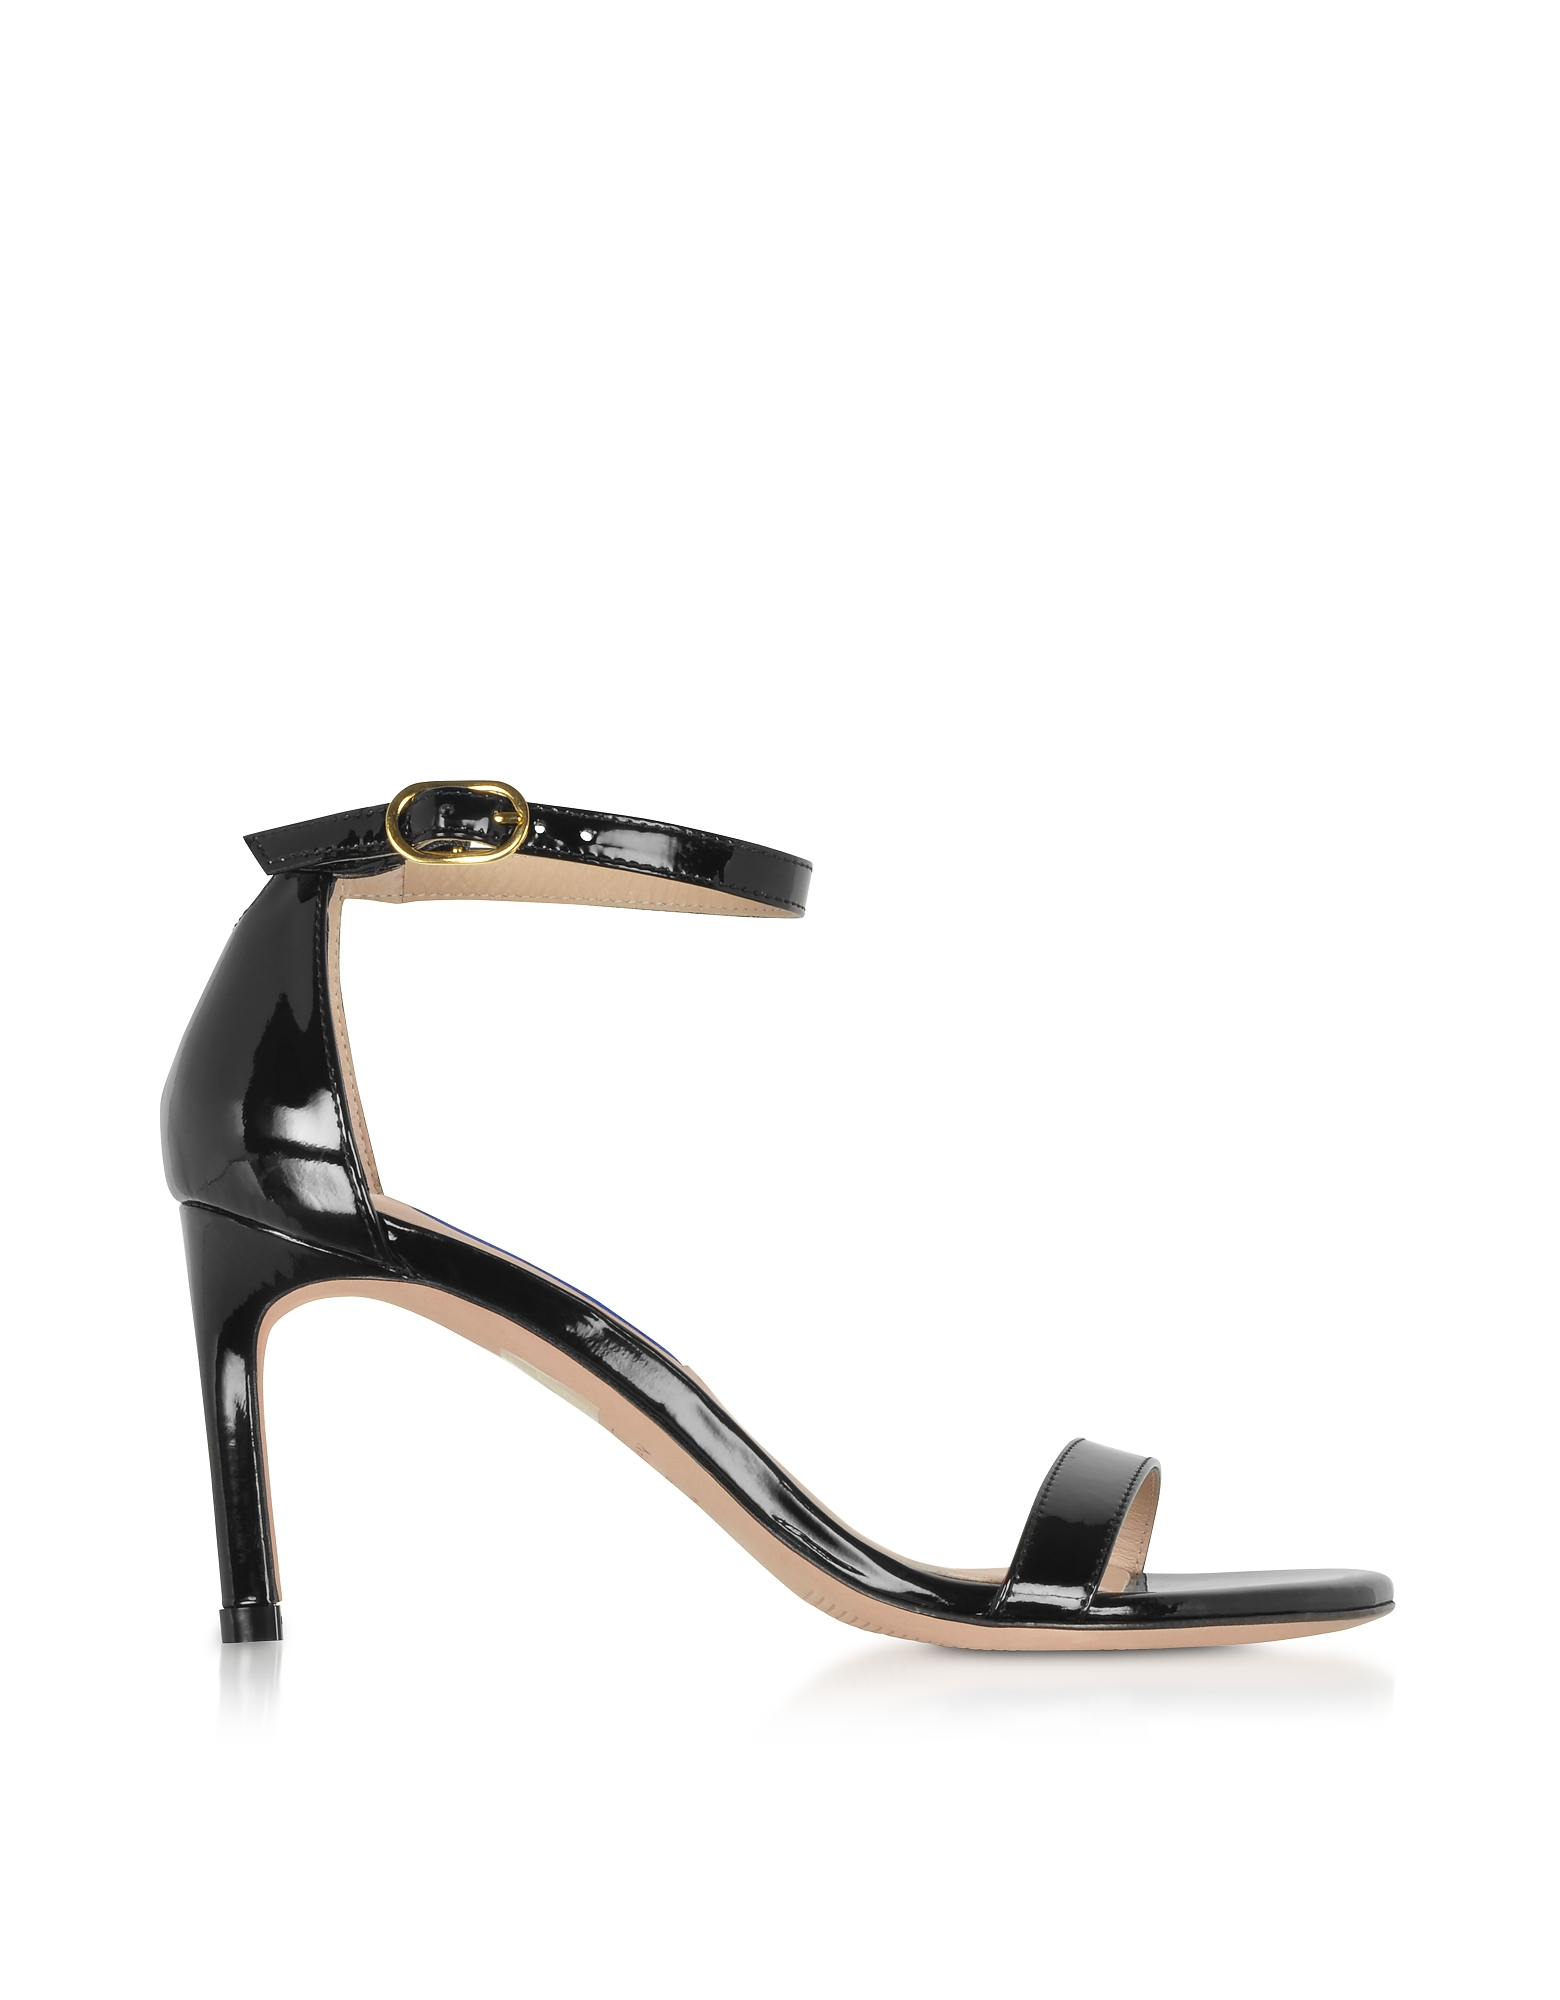 The Nunaked Straight Black Patent Leather Sandals